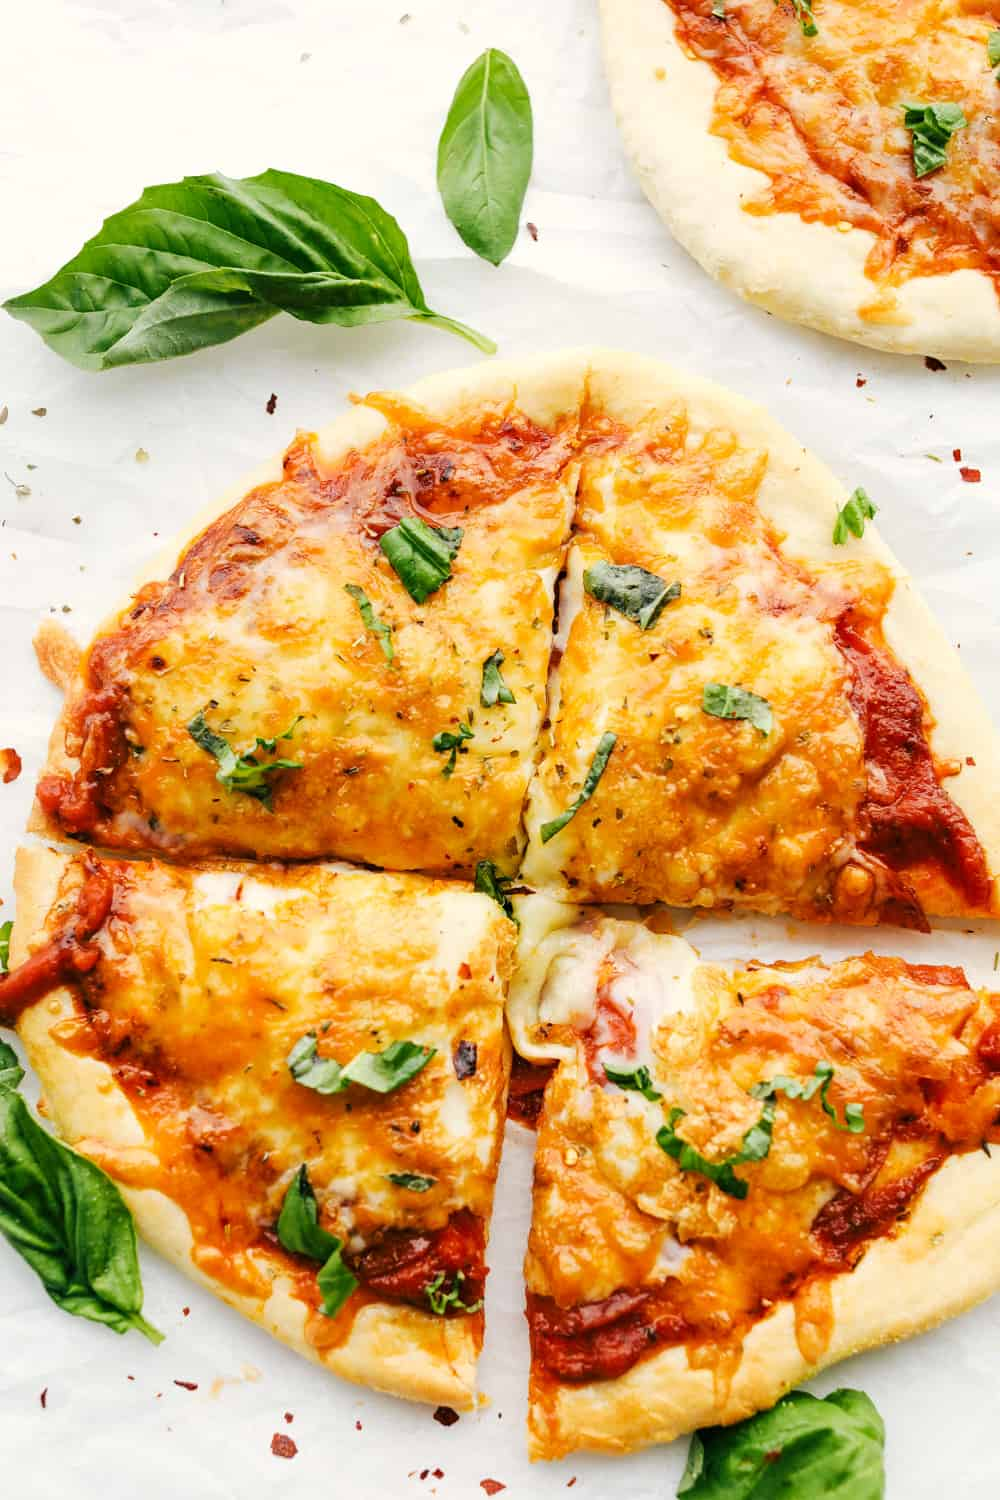 Sliced air fryer pizza, ready to eat.